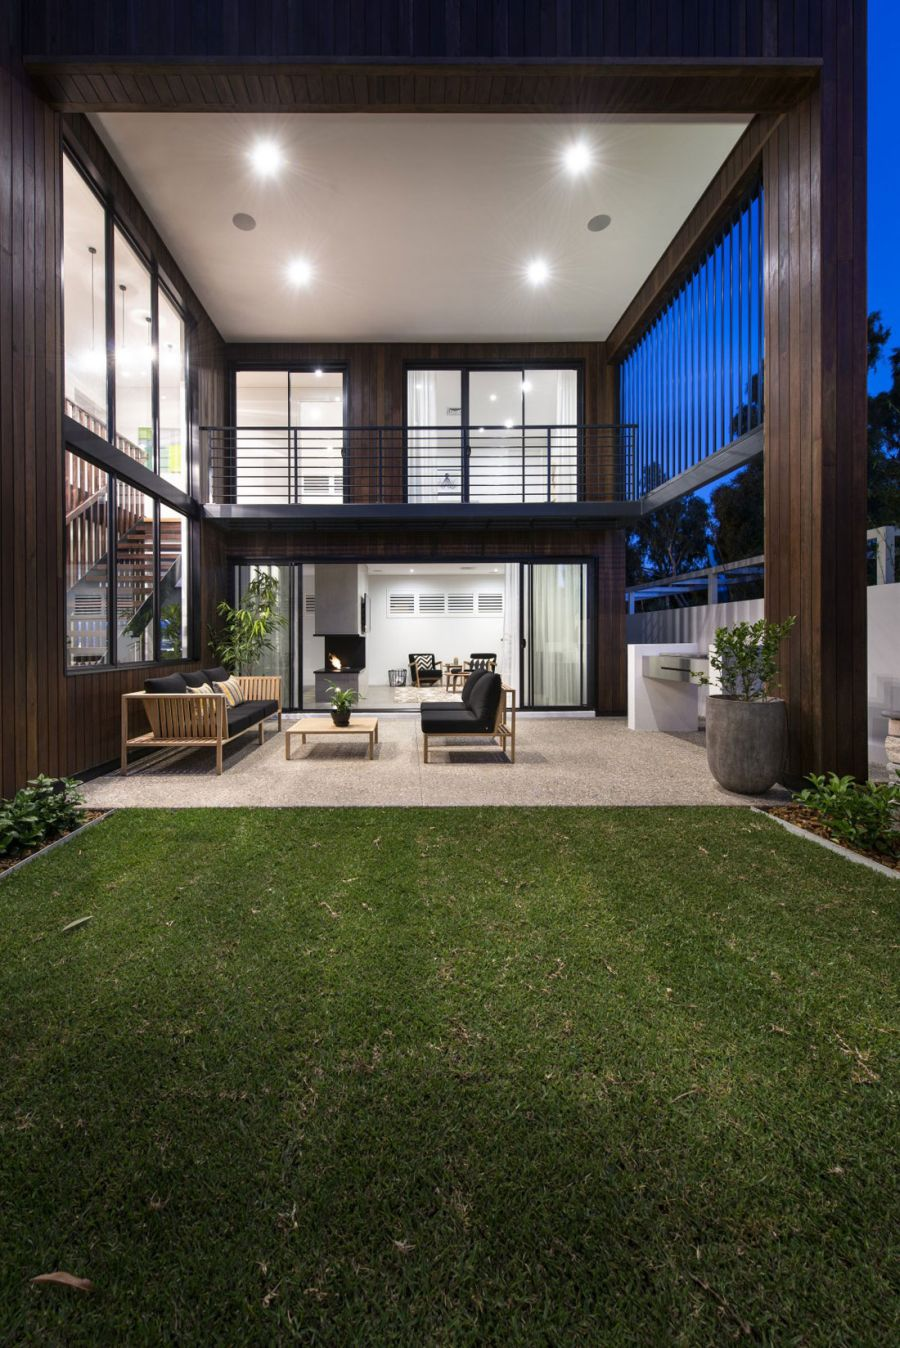 Amazing Minimalist Residence With A Sizzling Courtyard : Incredible View Of He Two Level Warehaus Residence By Residential Attitudes Home Exterior